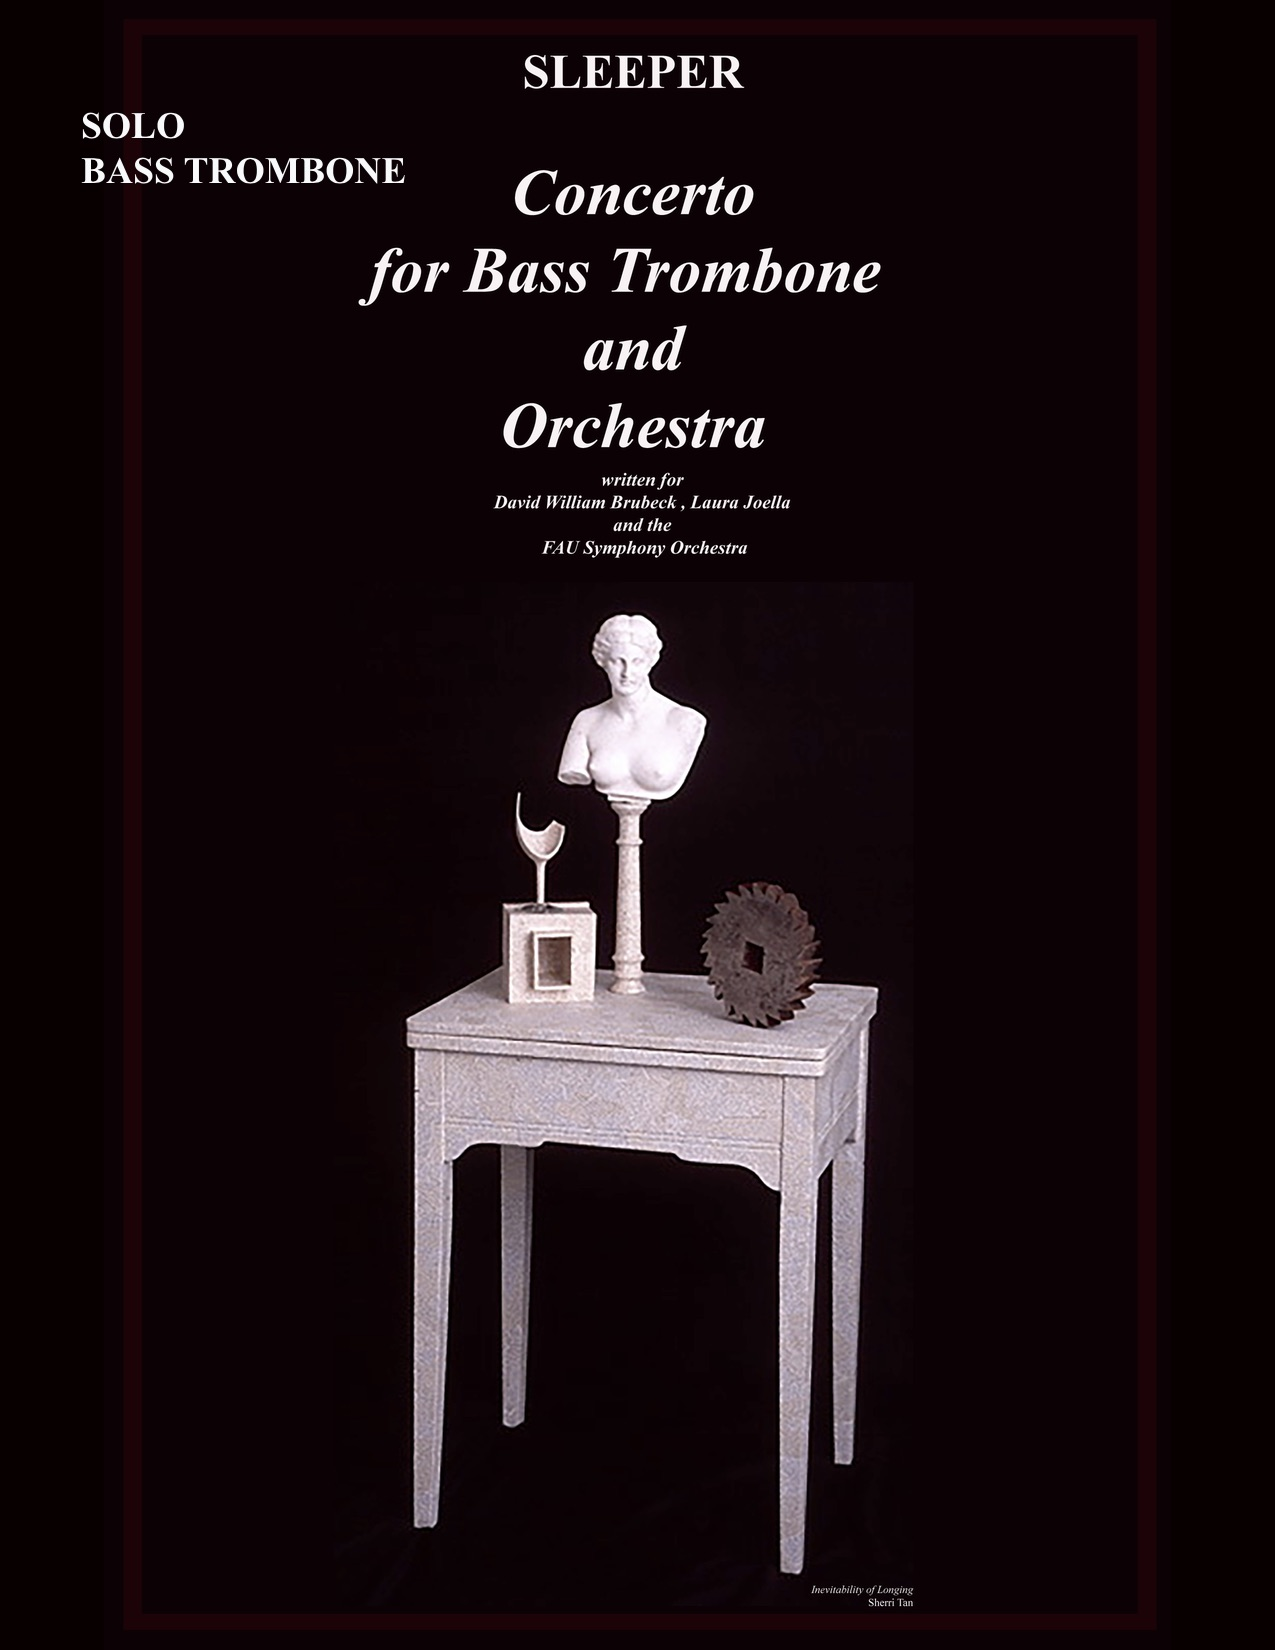 SOLO.BTRB.BTRBConcerto-2 (dragged) 1 copy